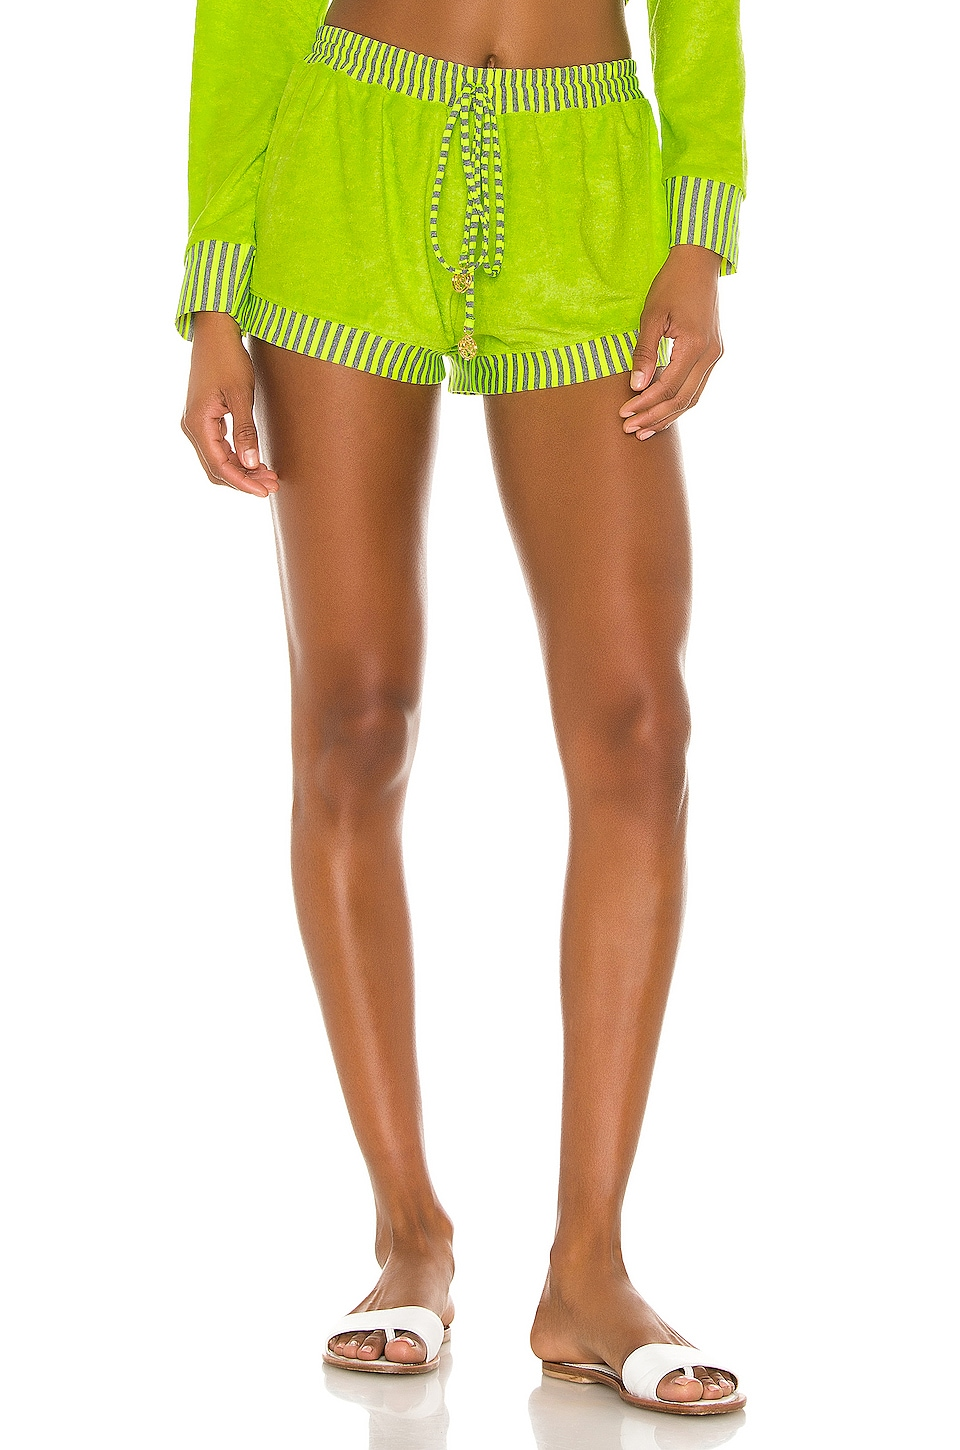 Luli Fama Relaxed Shorts in Neon Yellow